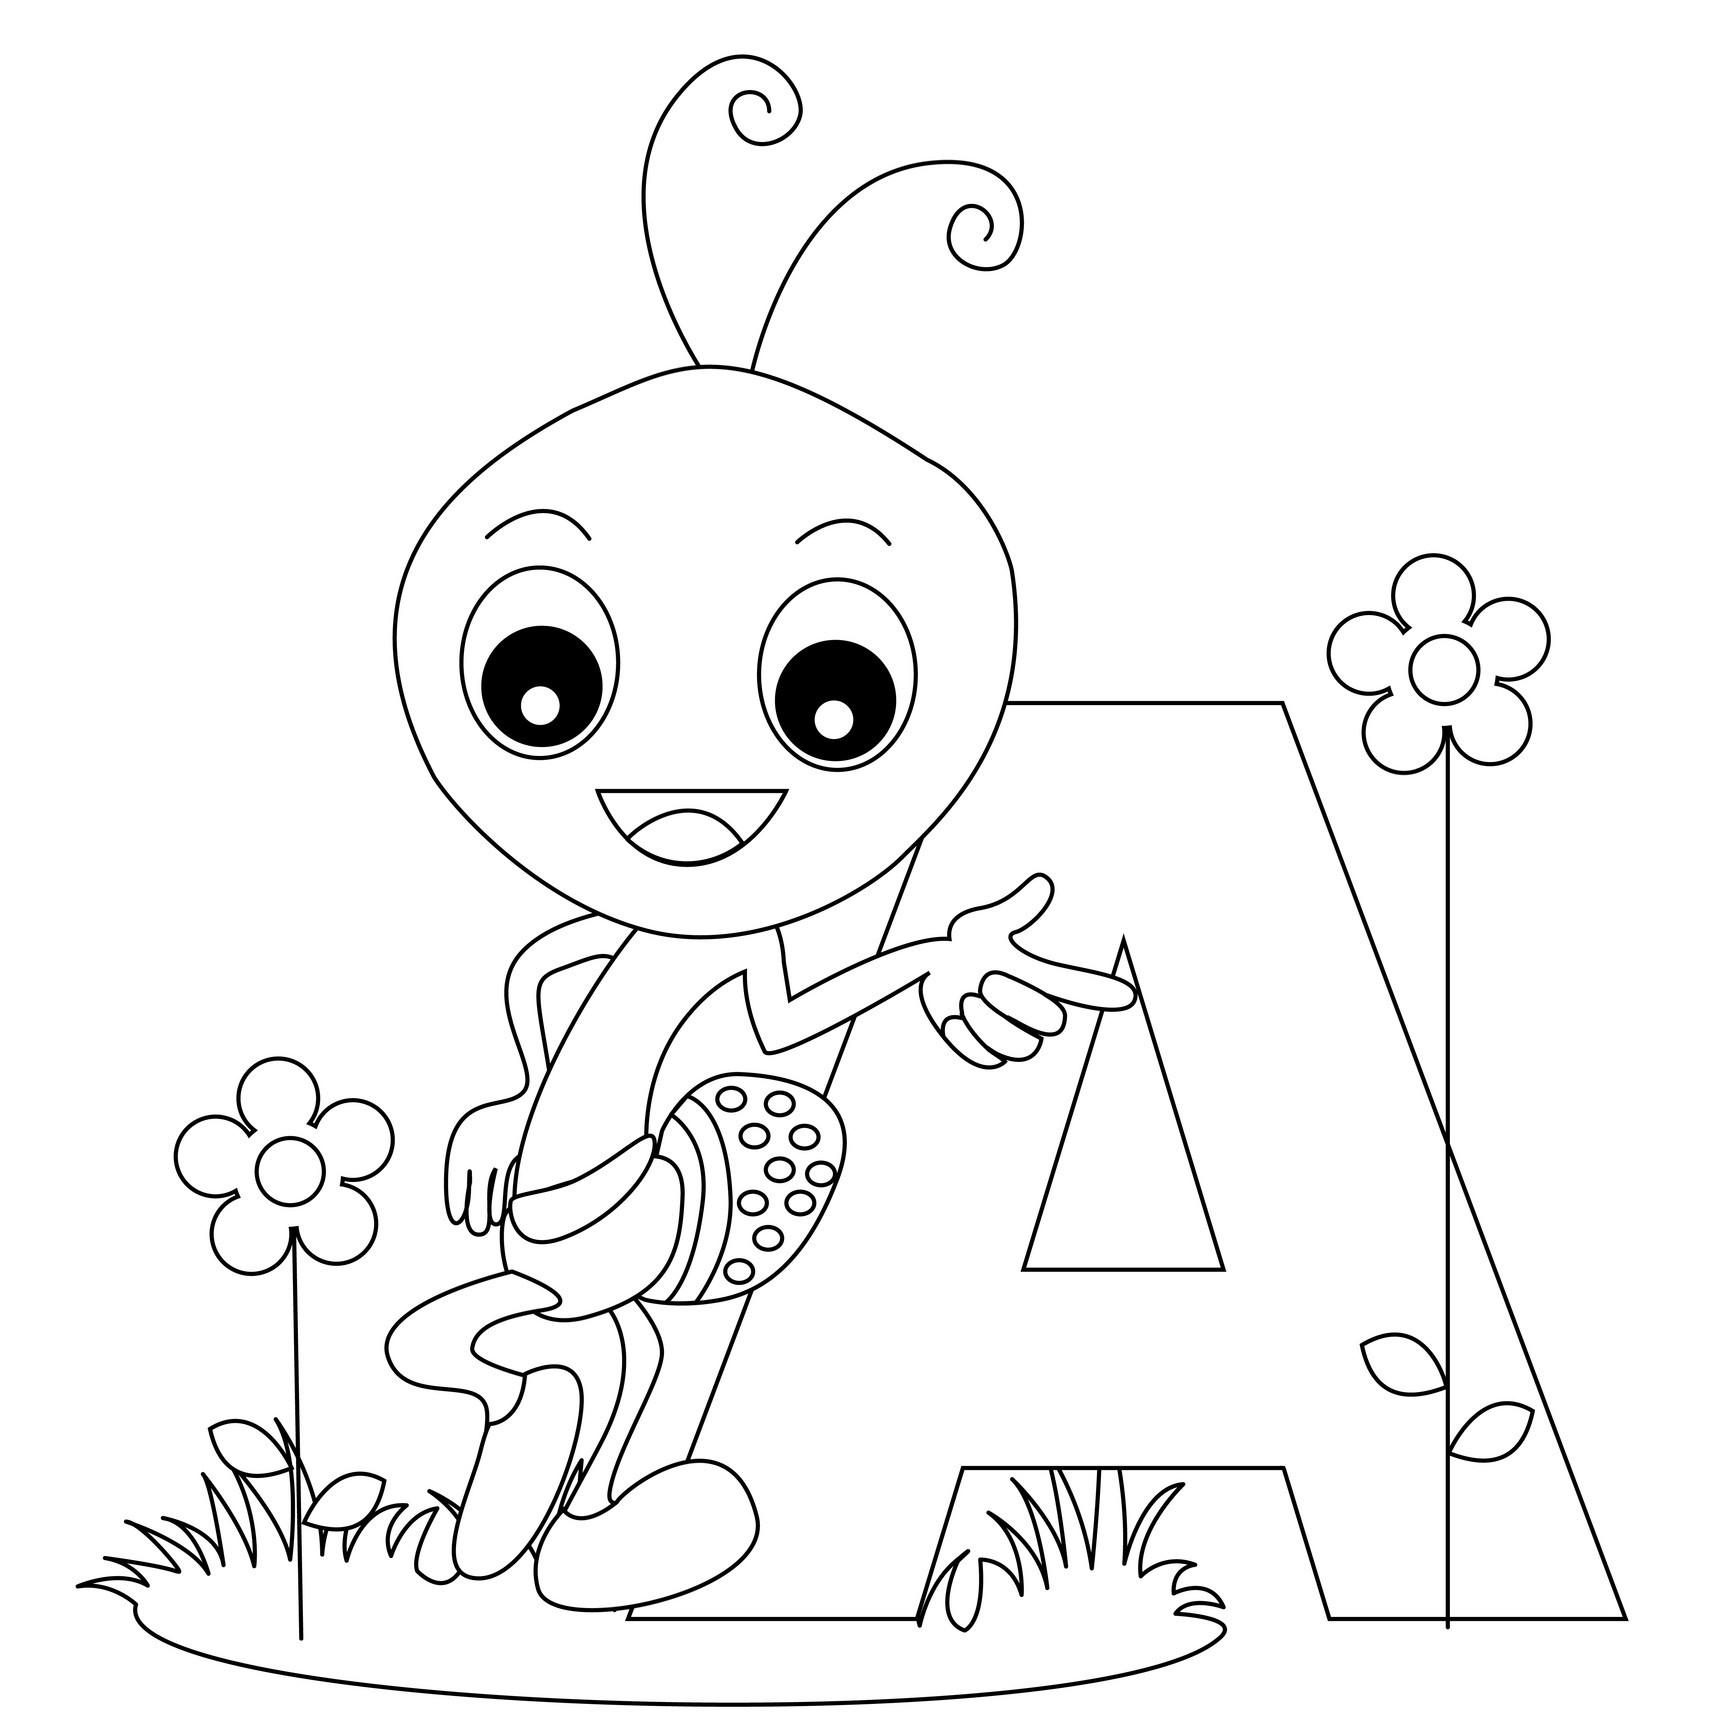 letter coloring pages printable free printable alphabet coloring pages for kids best printable pages letter coloring